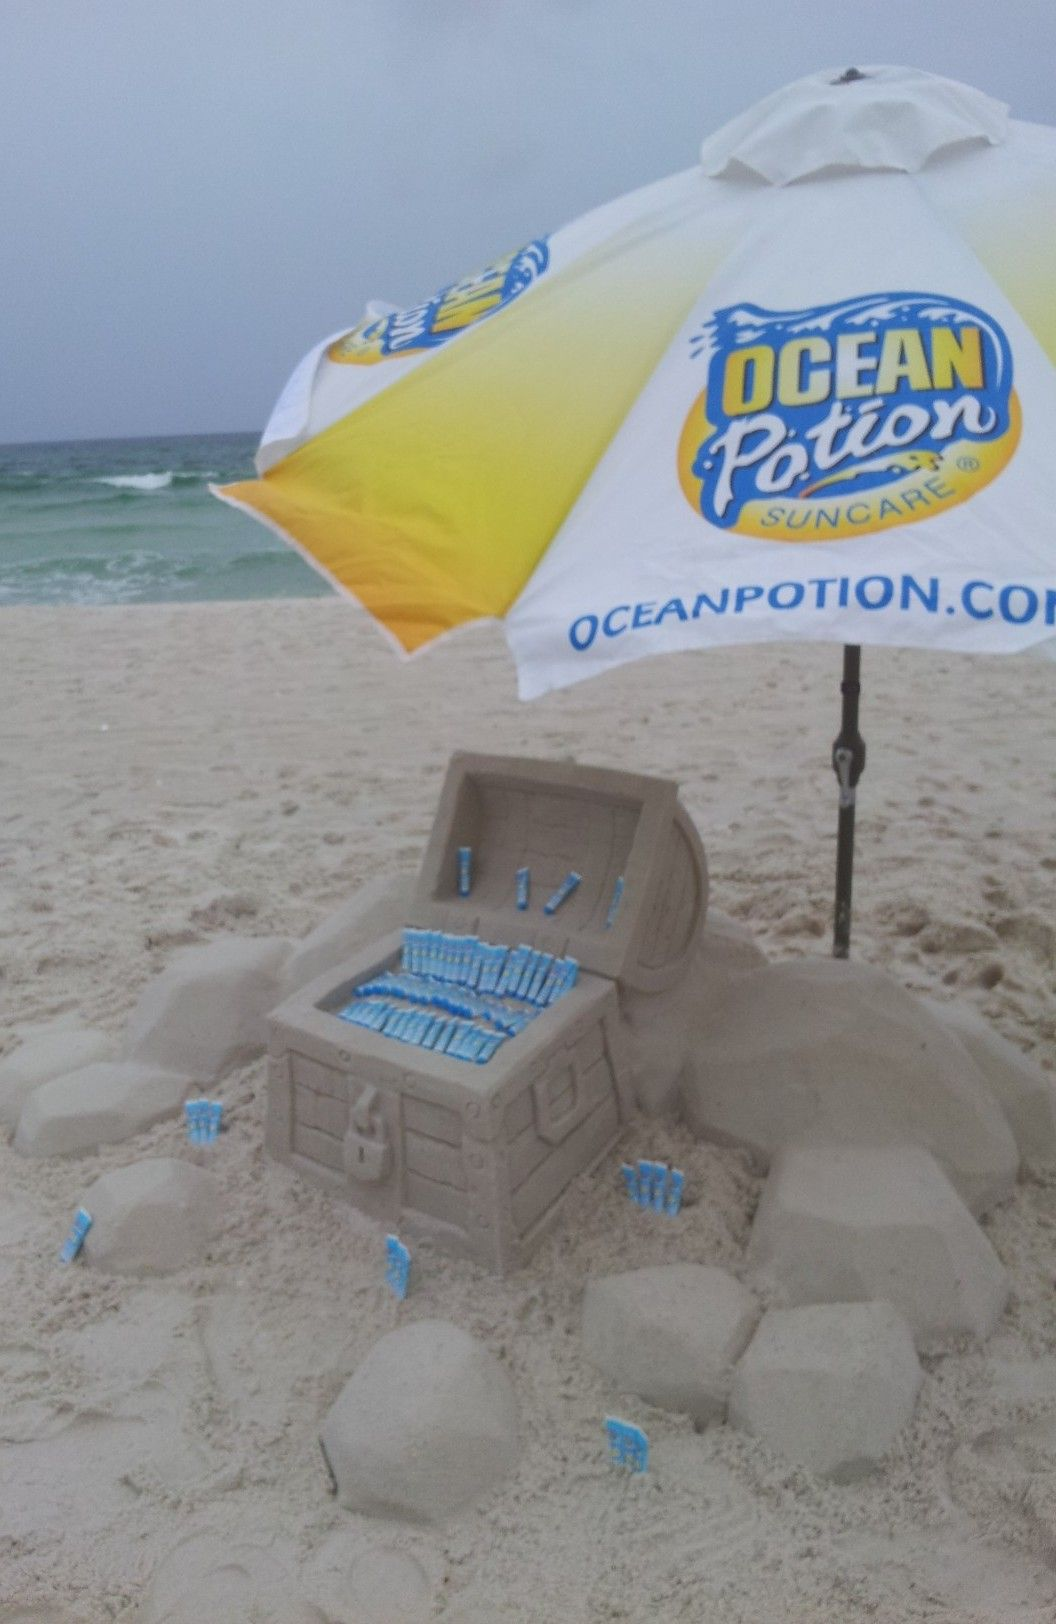 Panama City Beach Ocean Potion Pirate Treasure